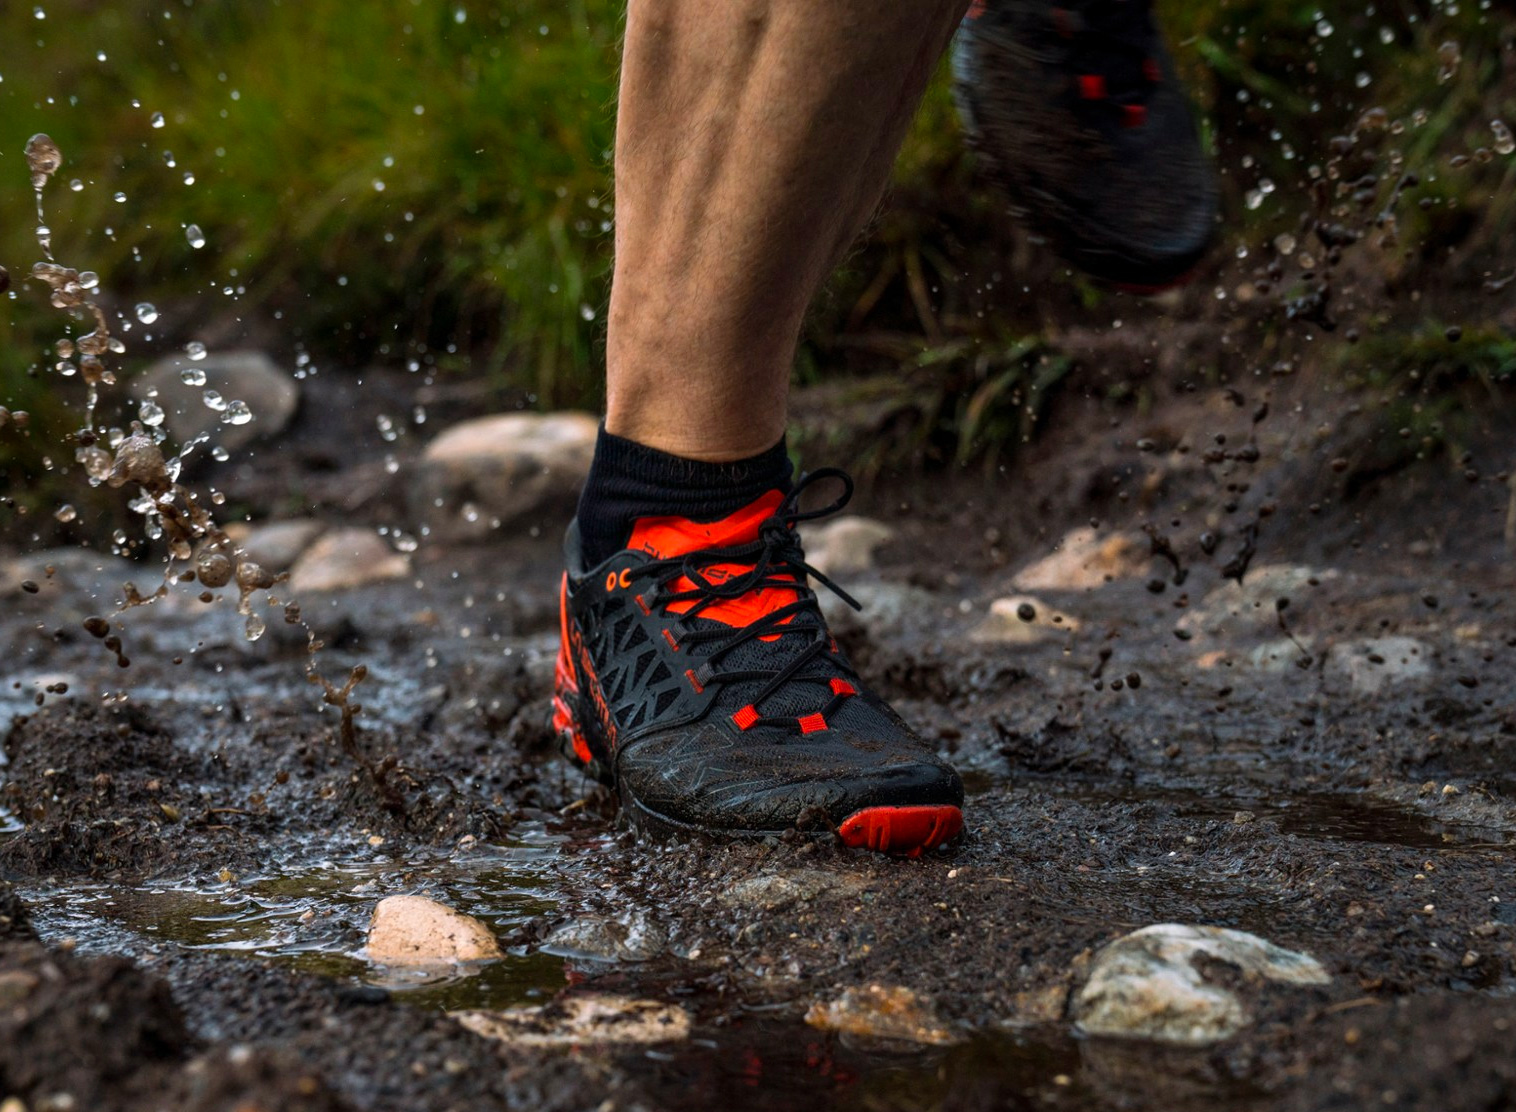 La Sportiva's Bushido II Trail Runner is Built for Battle at werd.com